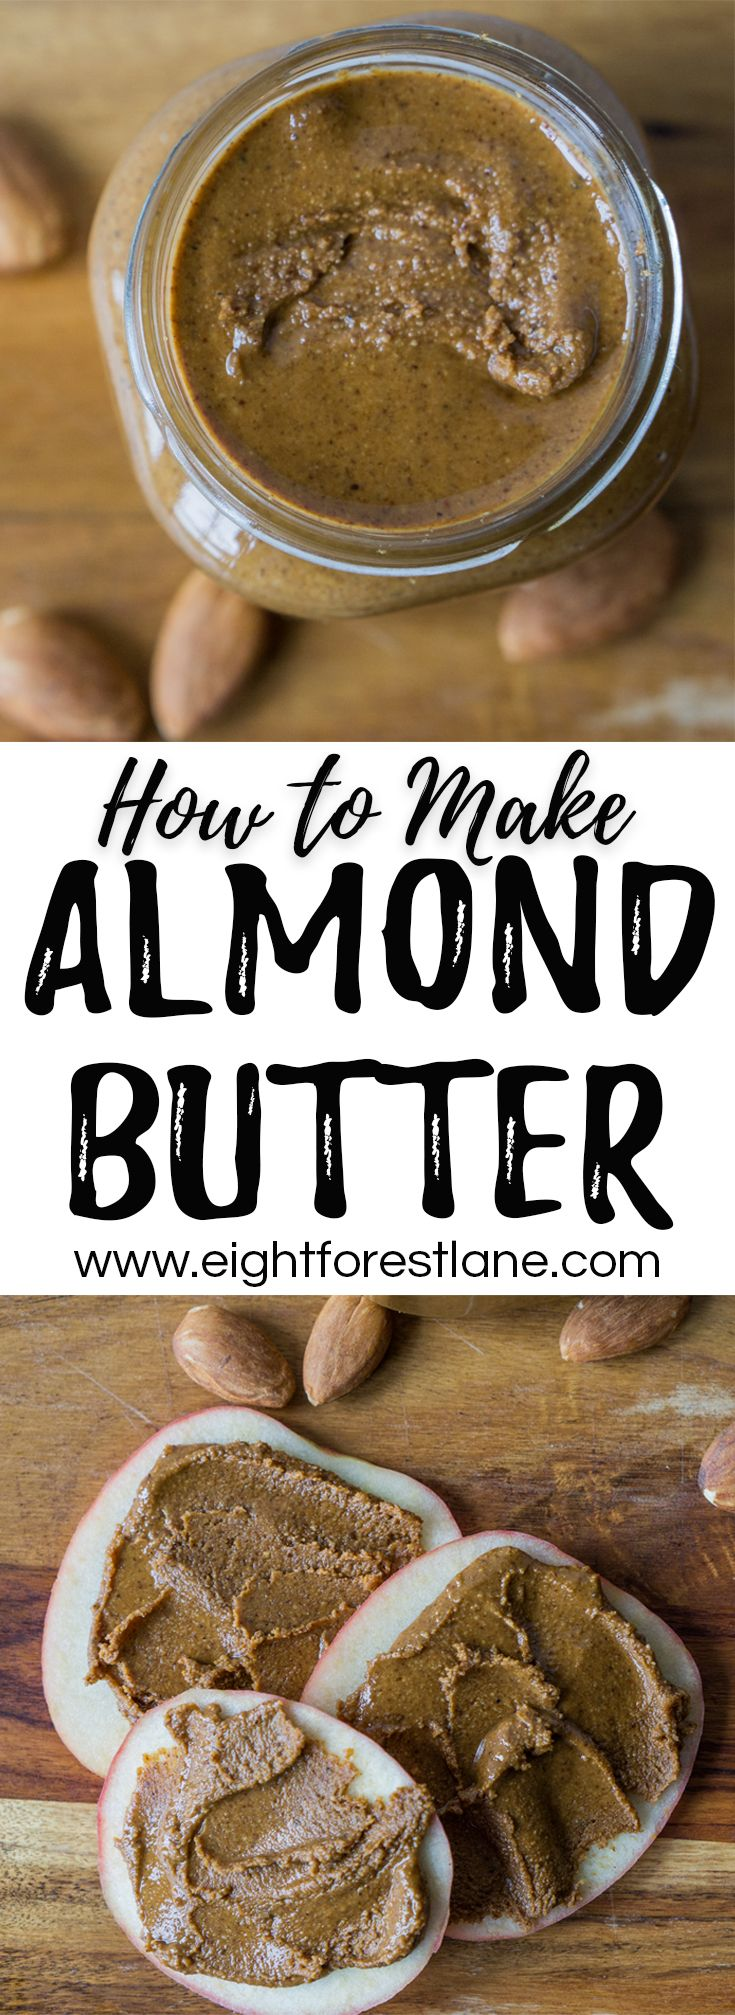 How to Make Almond Butter + Video